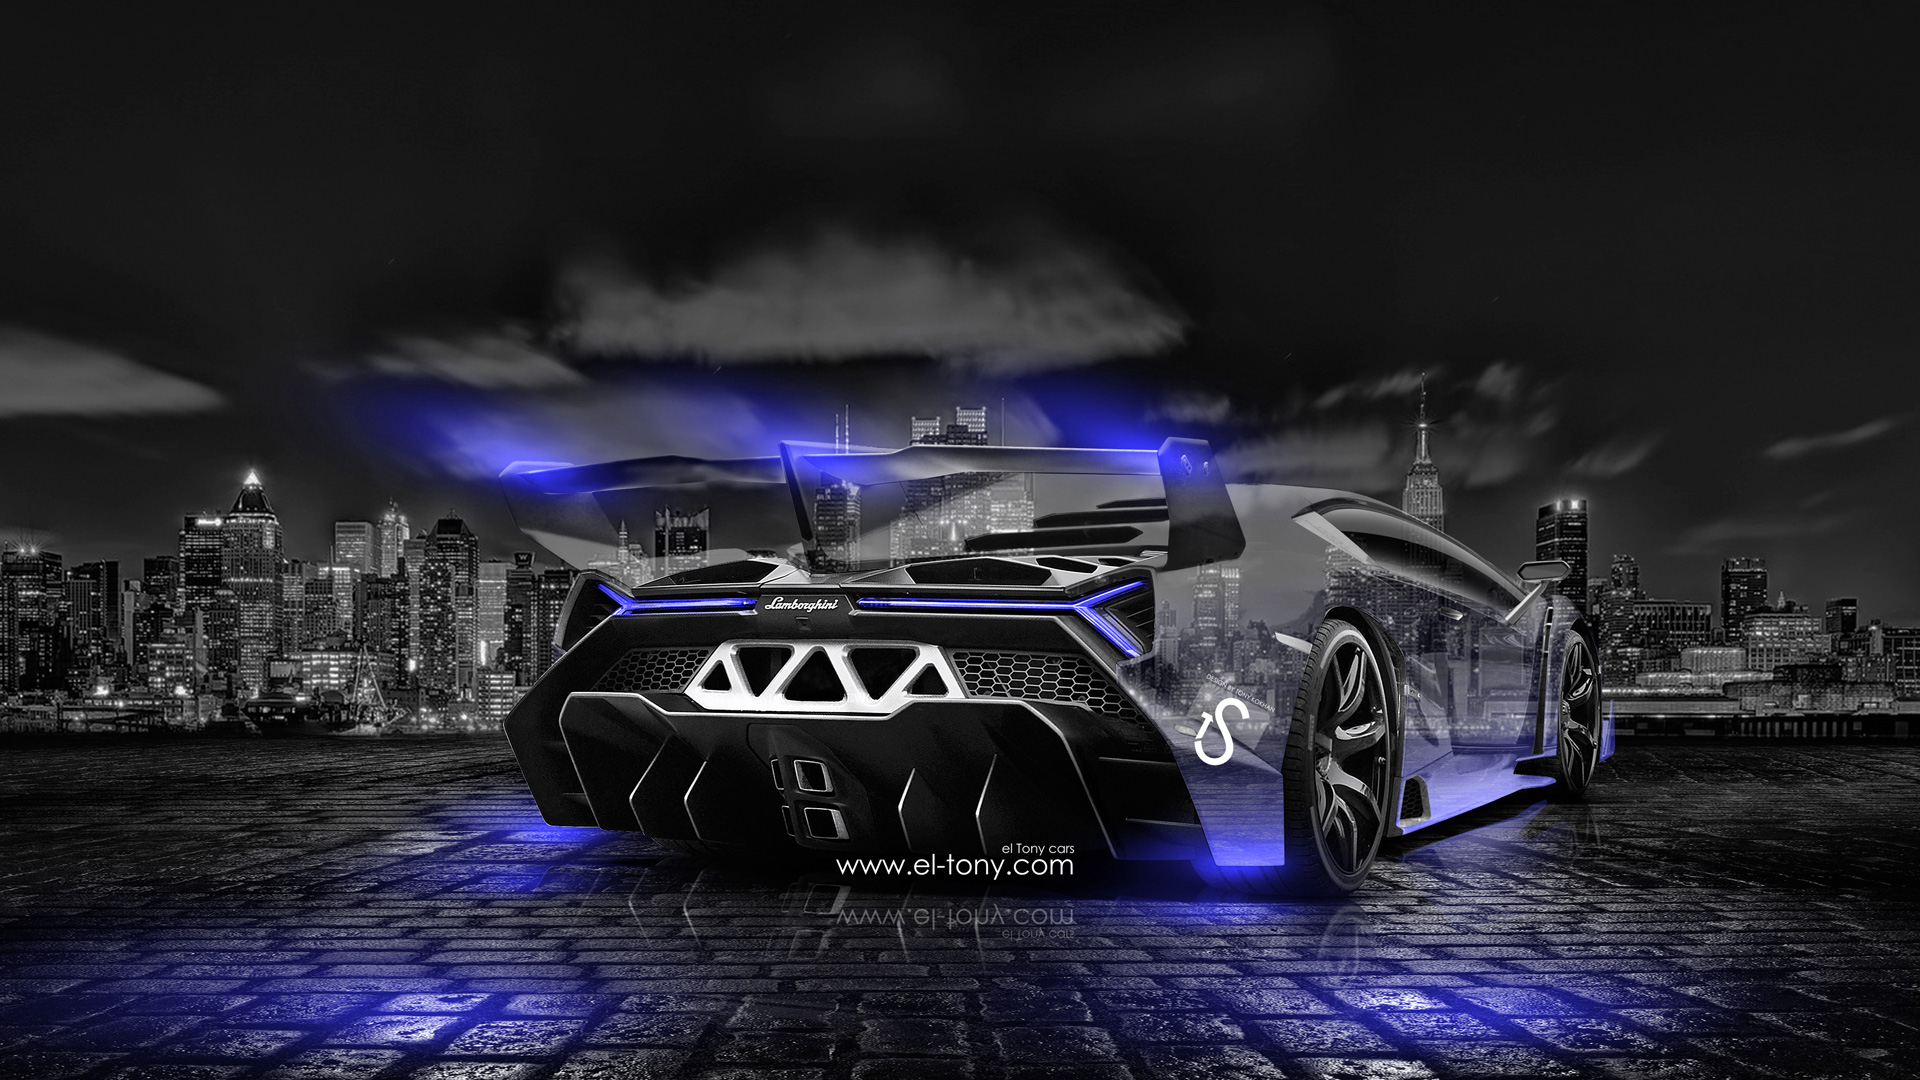 Awesome Lamborghini Veneno Crystal City Car 2014 Blue Neon